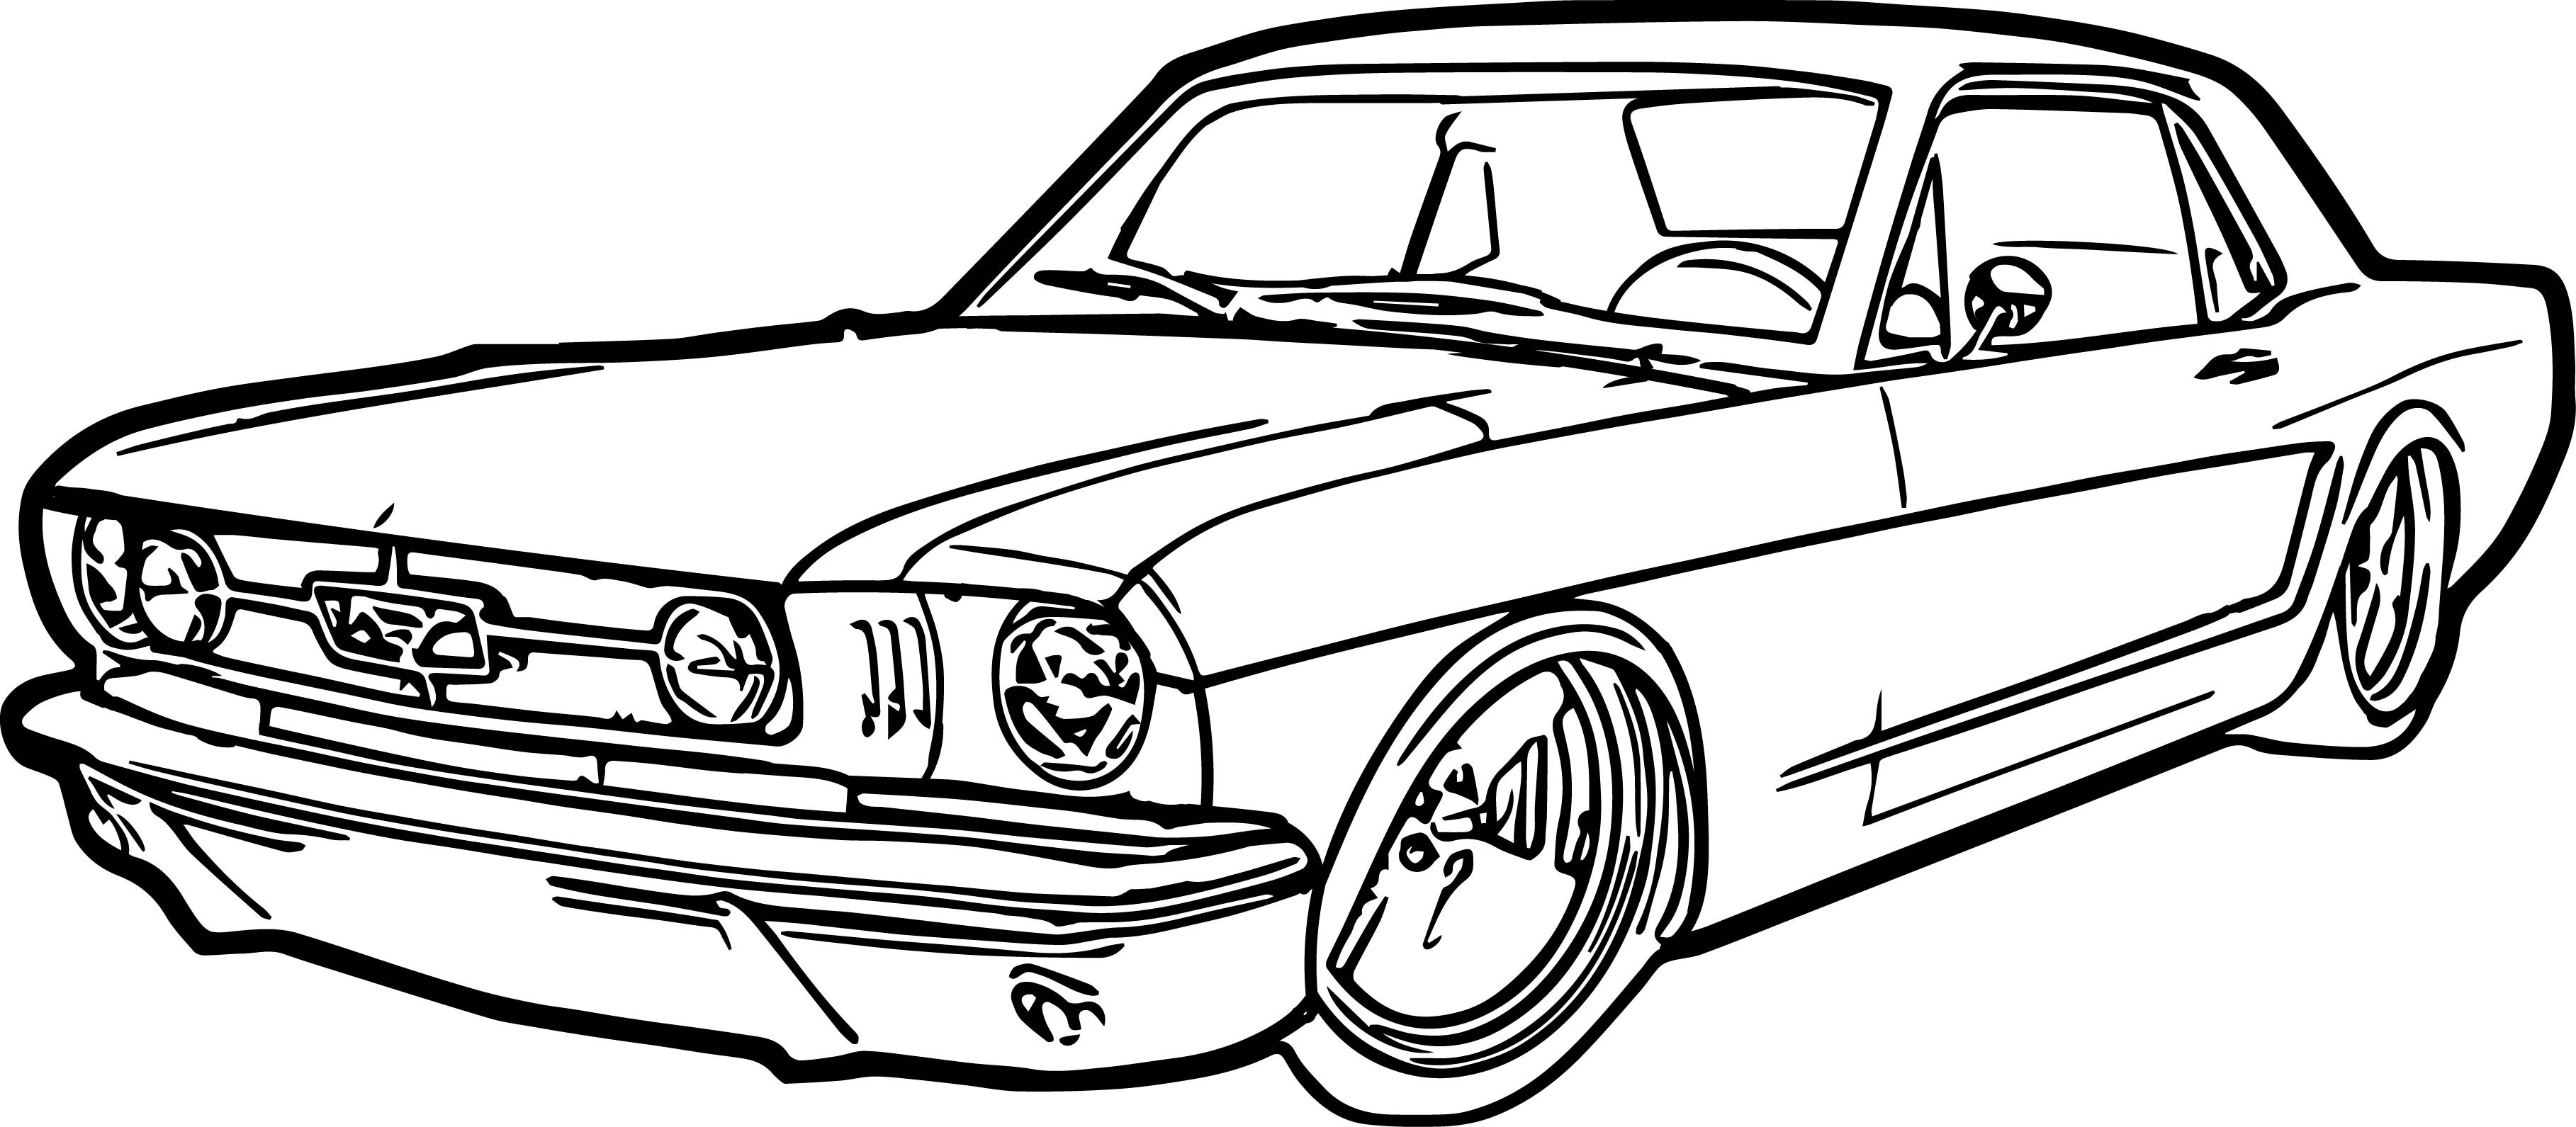 classic car coloring pages printable classic car modication lowrider cars coloring pages car printable pages coloring classic